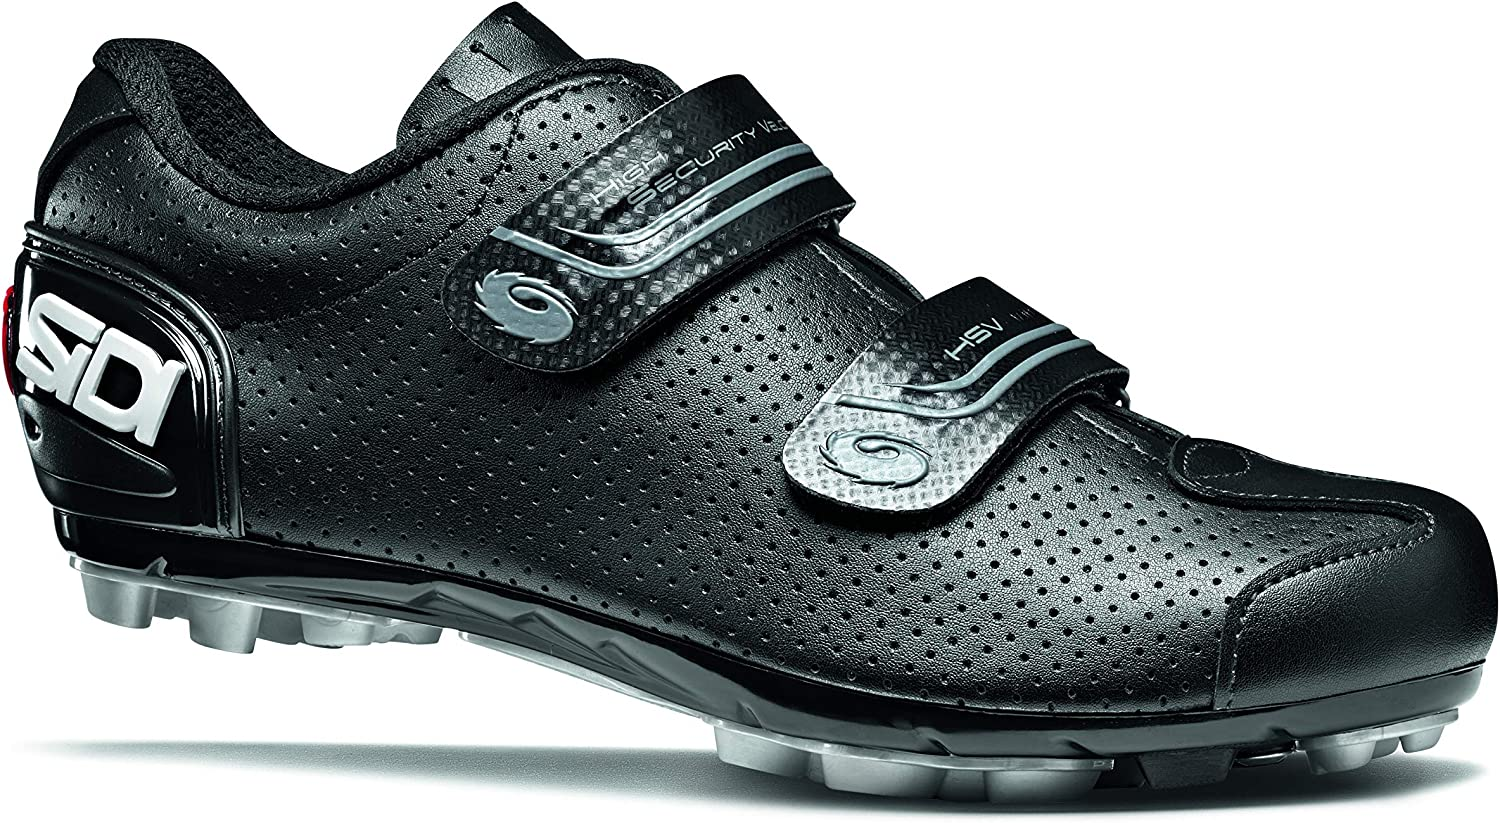 Swift Product Air Carbon Shadow Shoes Indoor Cycling Save money